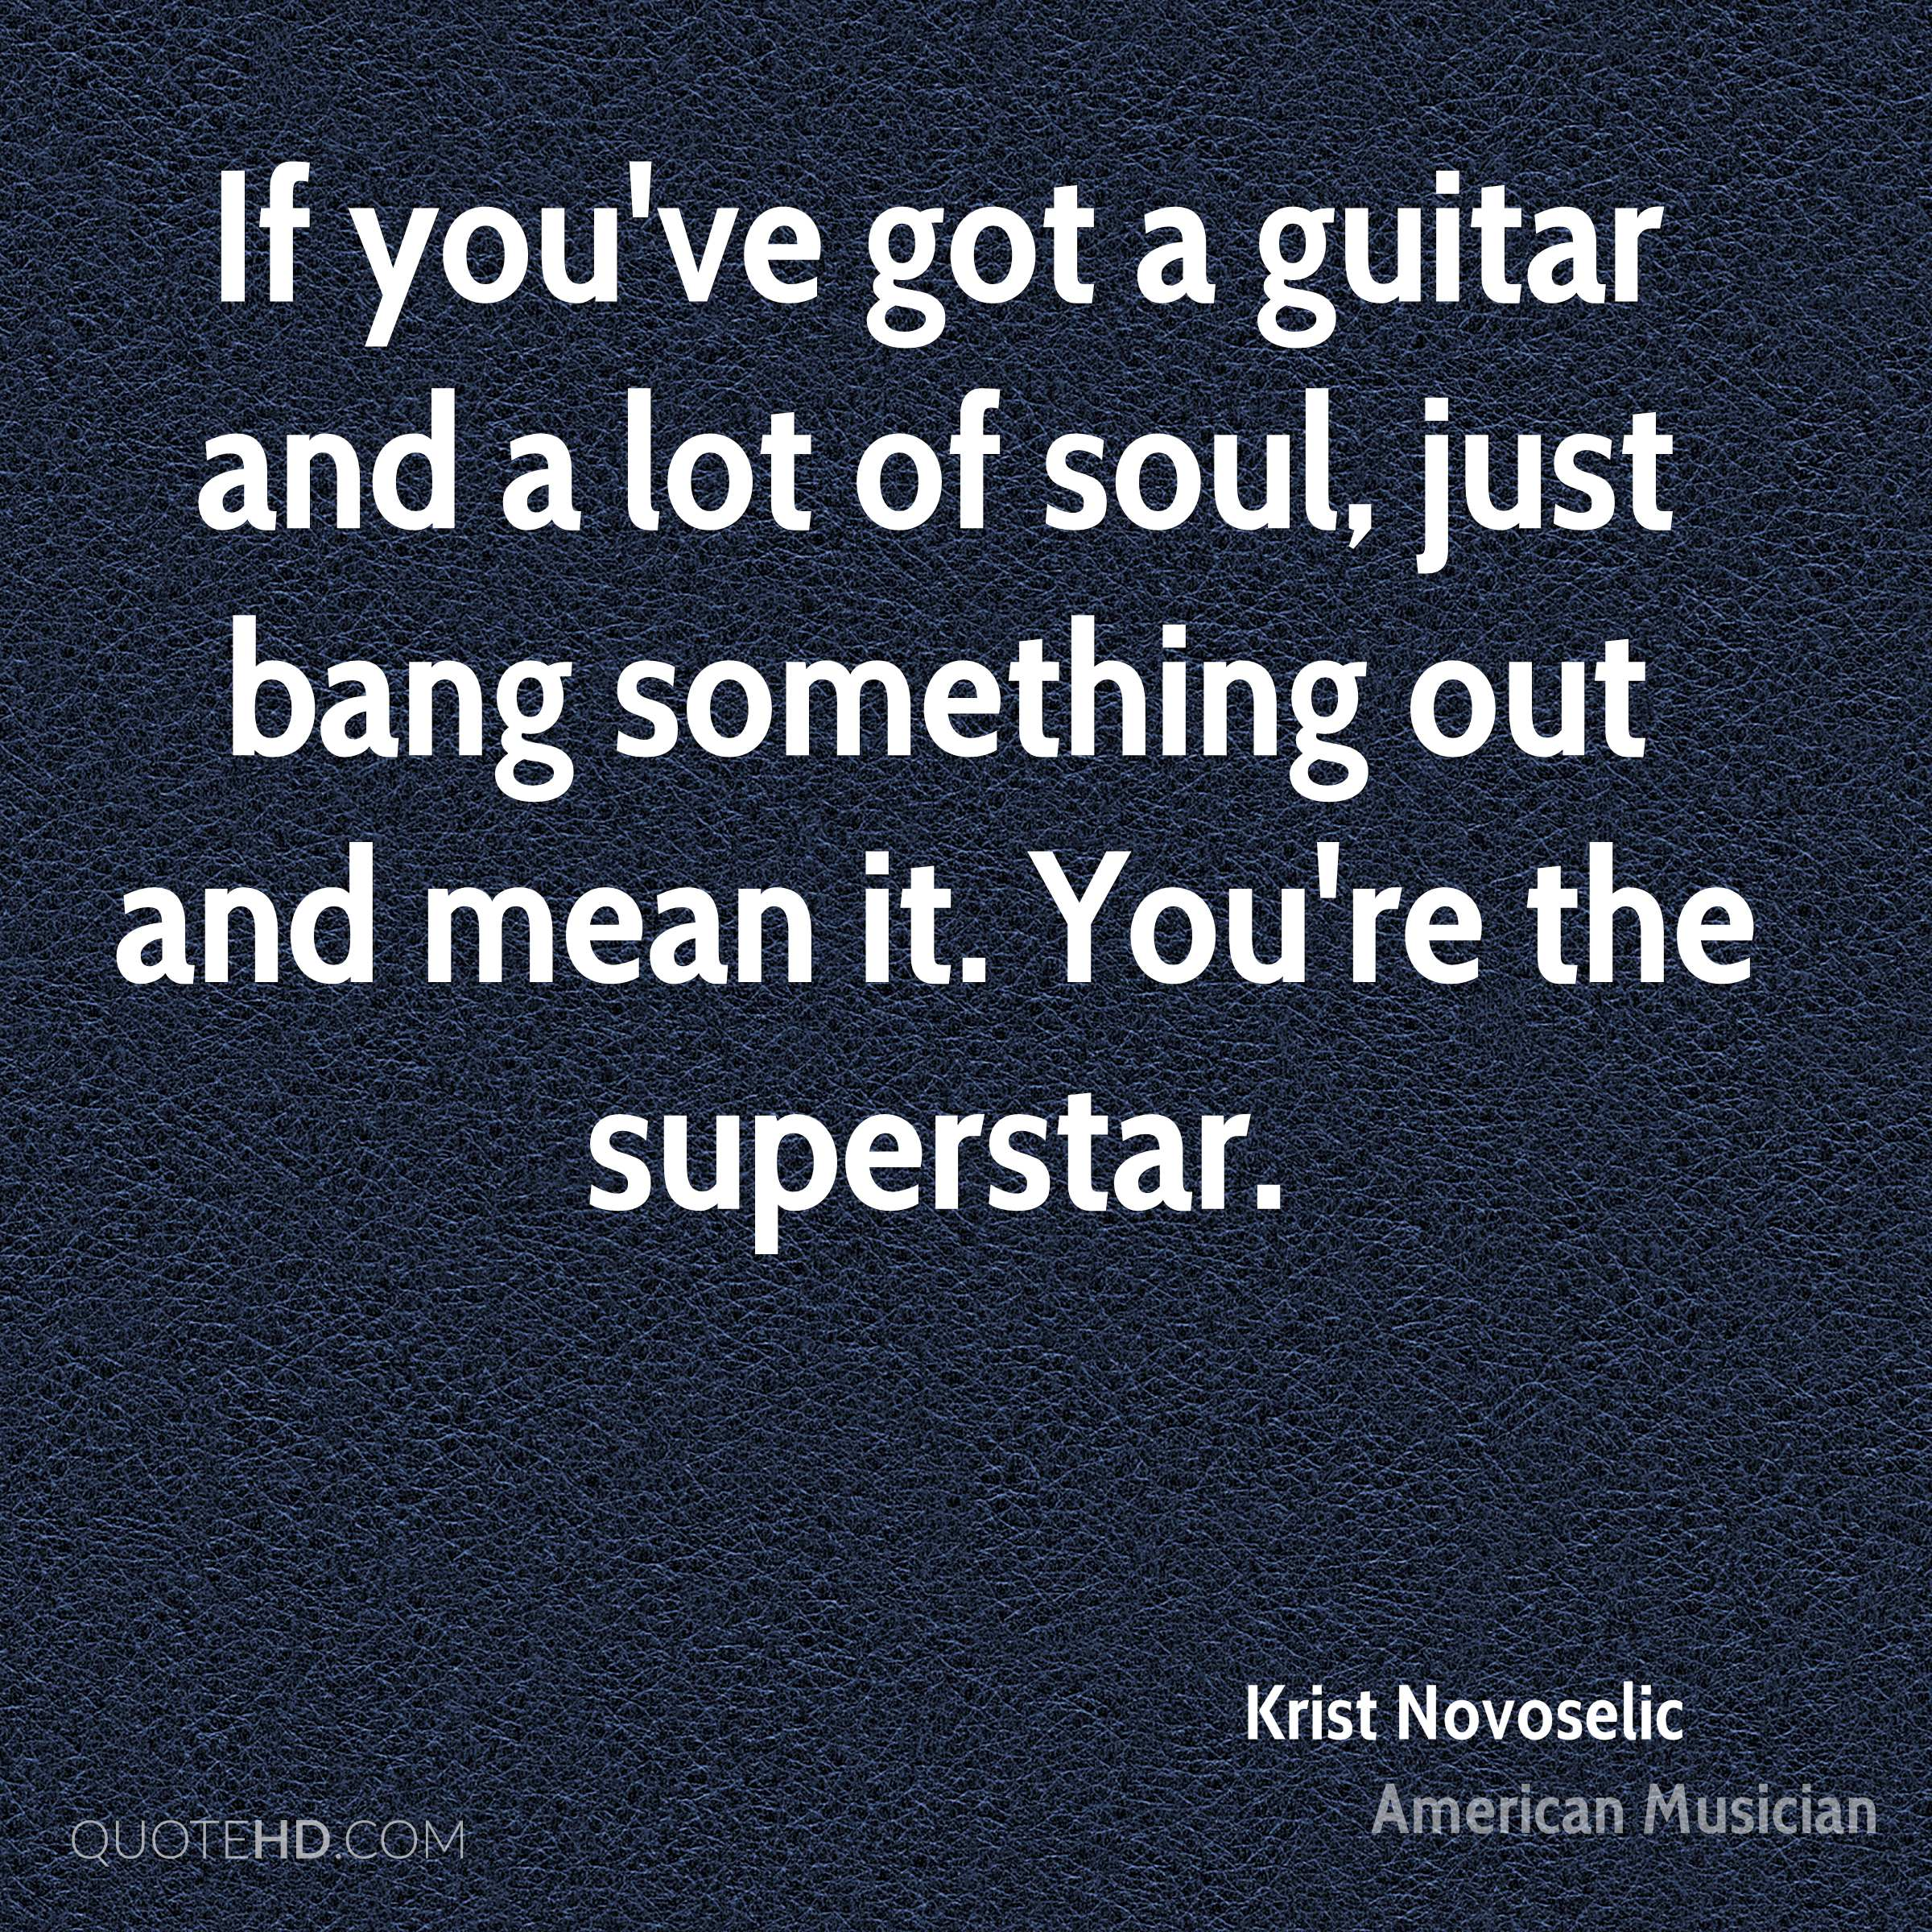 If you've got a guitar and a lot of soul, just bang something out and mean it. You're the superstar.